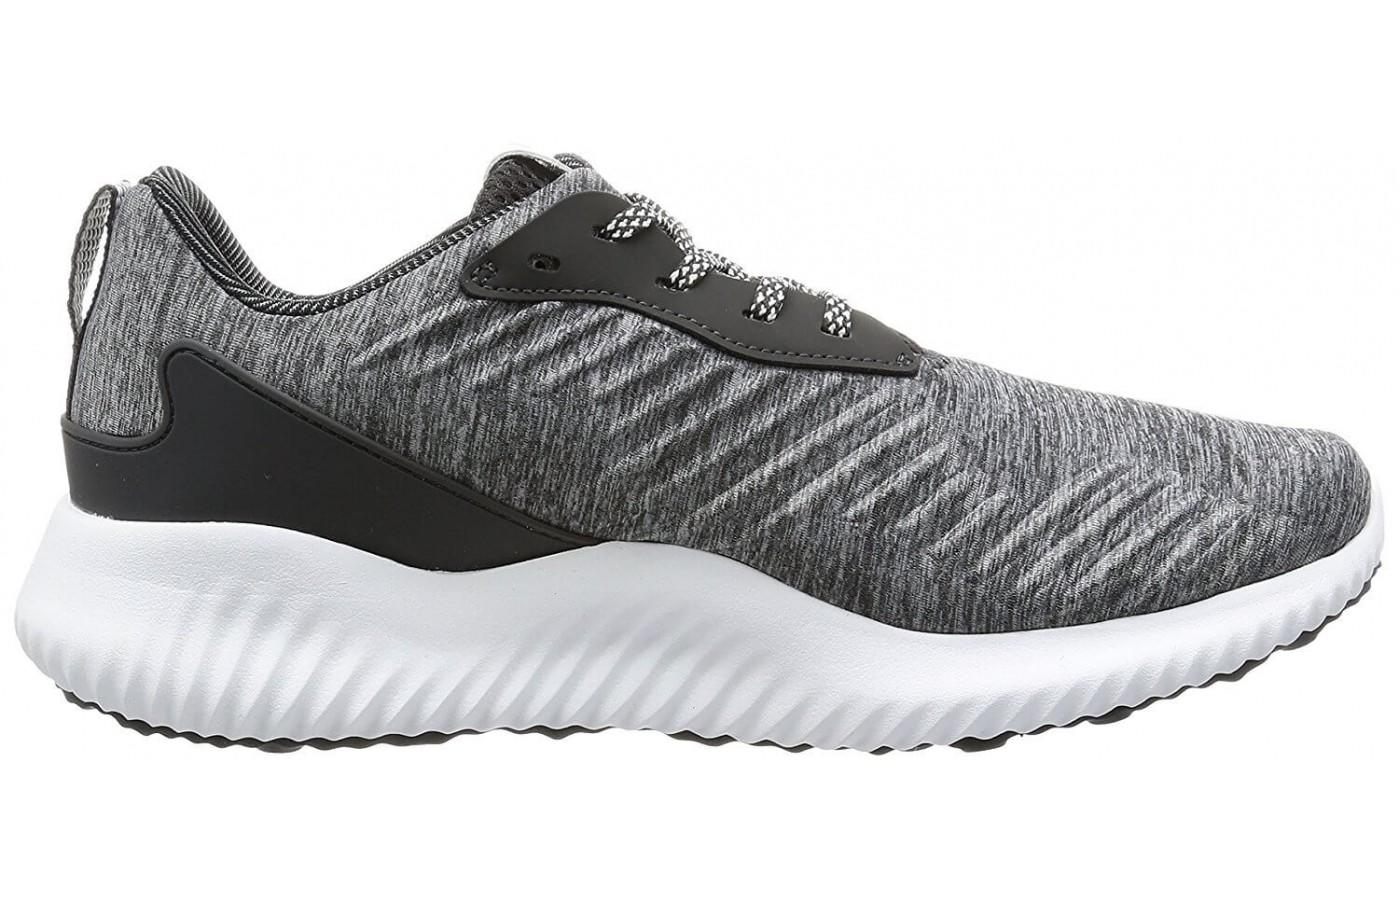 c0720cb2e Adidas Alphabounce RC is a neutral shoe  Adidas Alphabounce RC features  traditional laces  Adidas Alphabounce RC midsole has Bounce cushioning ...